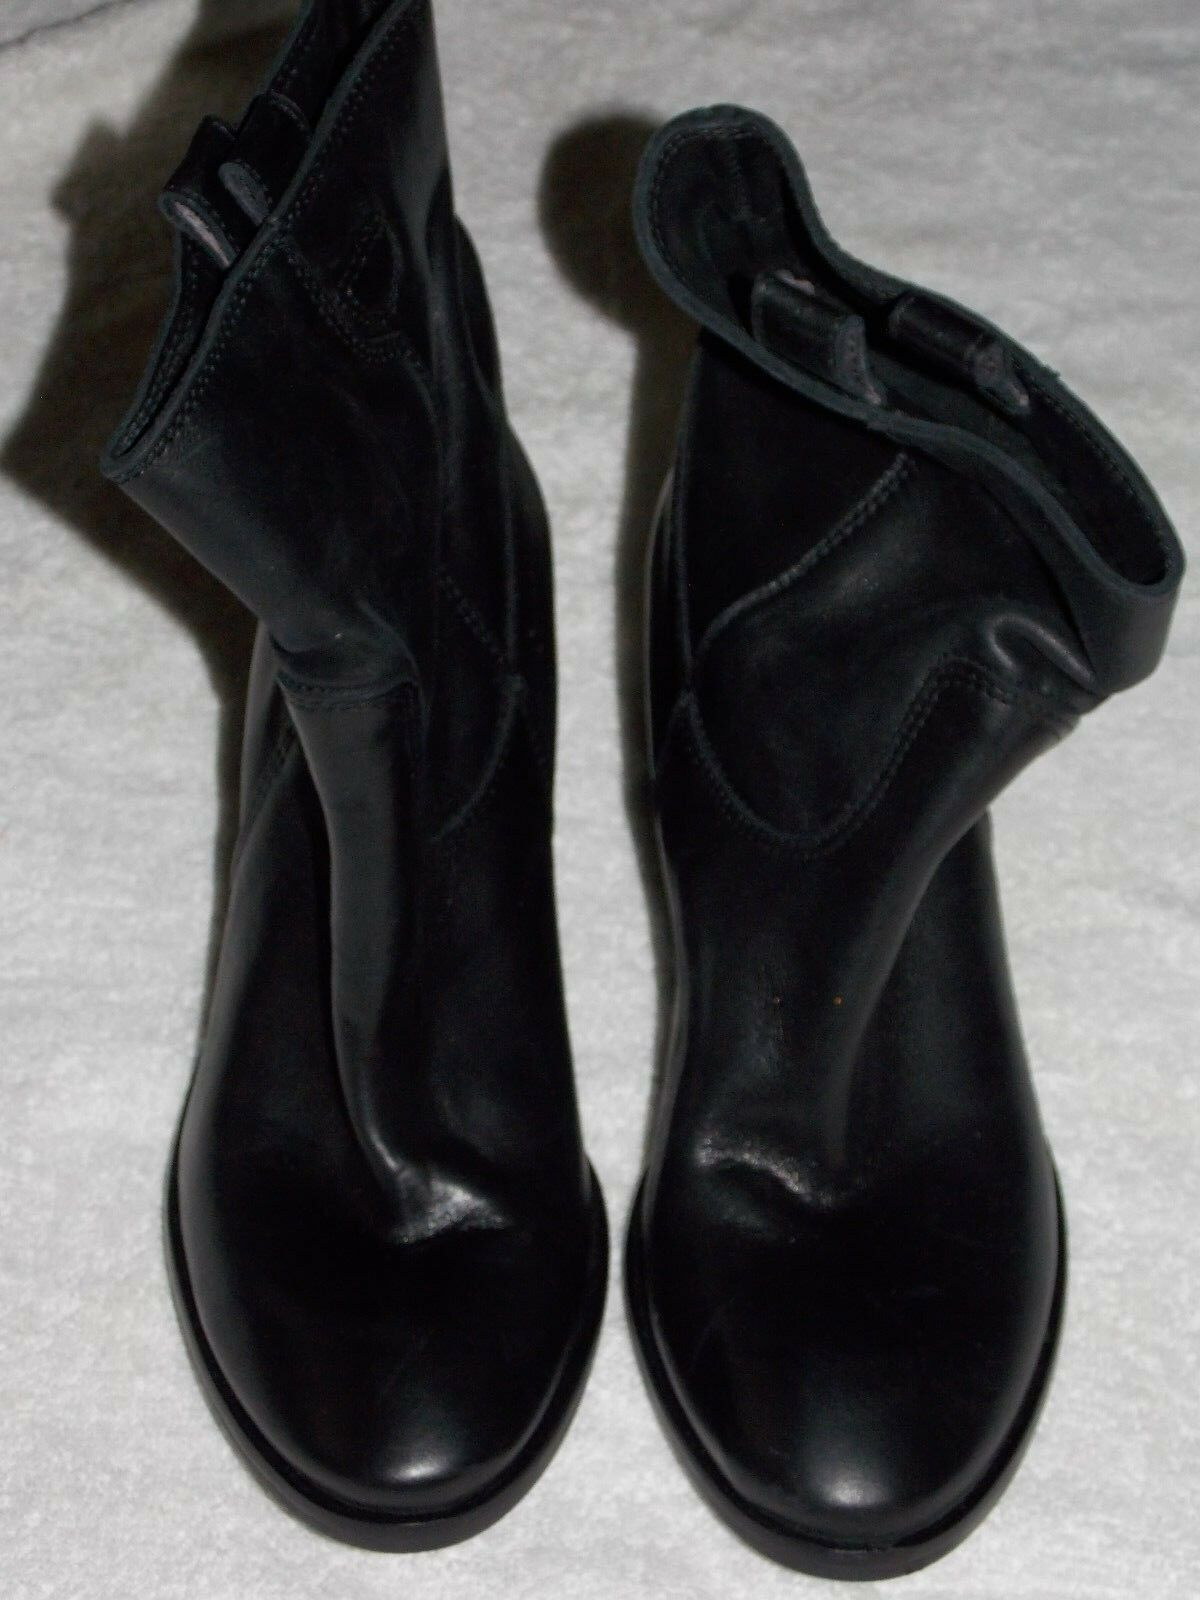 Charles David Slip On Black ANKLE BOOTS 8 For Women Used